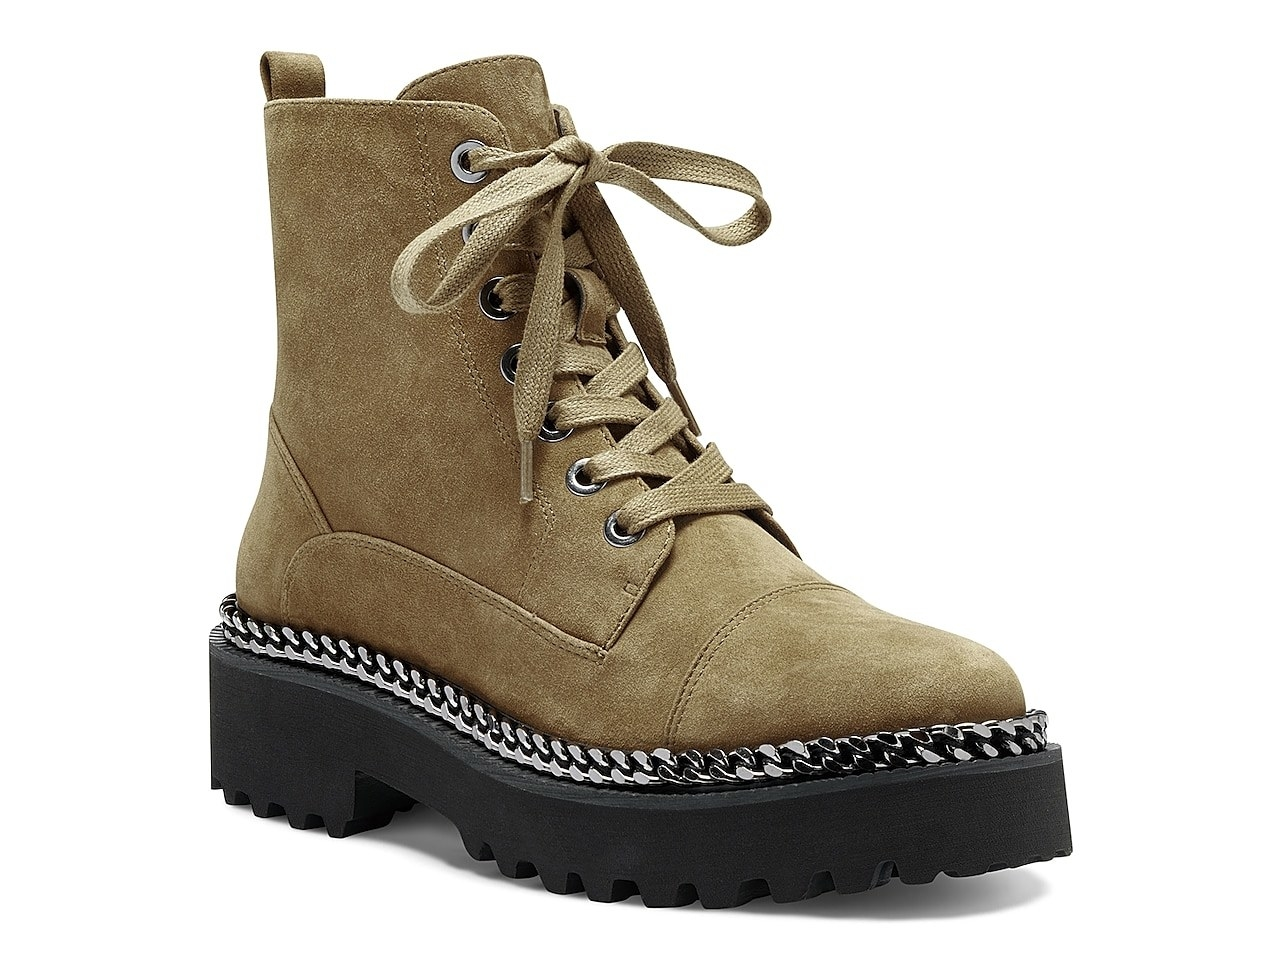 the green lace-up boots with a black platform bottom